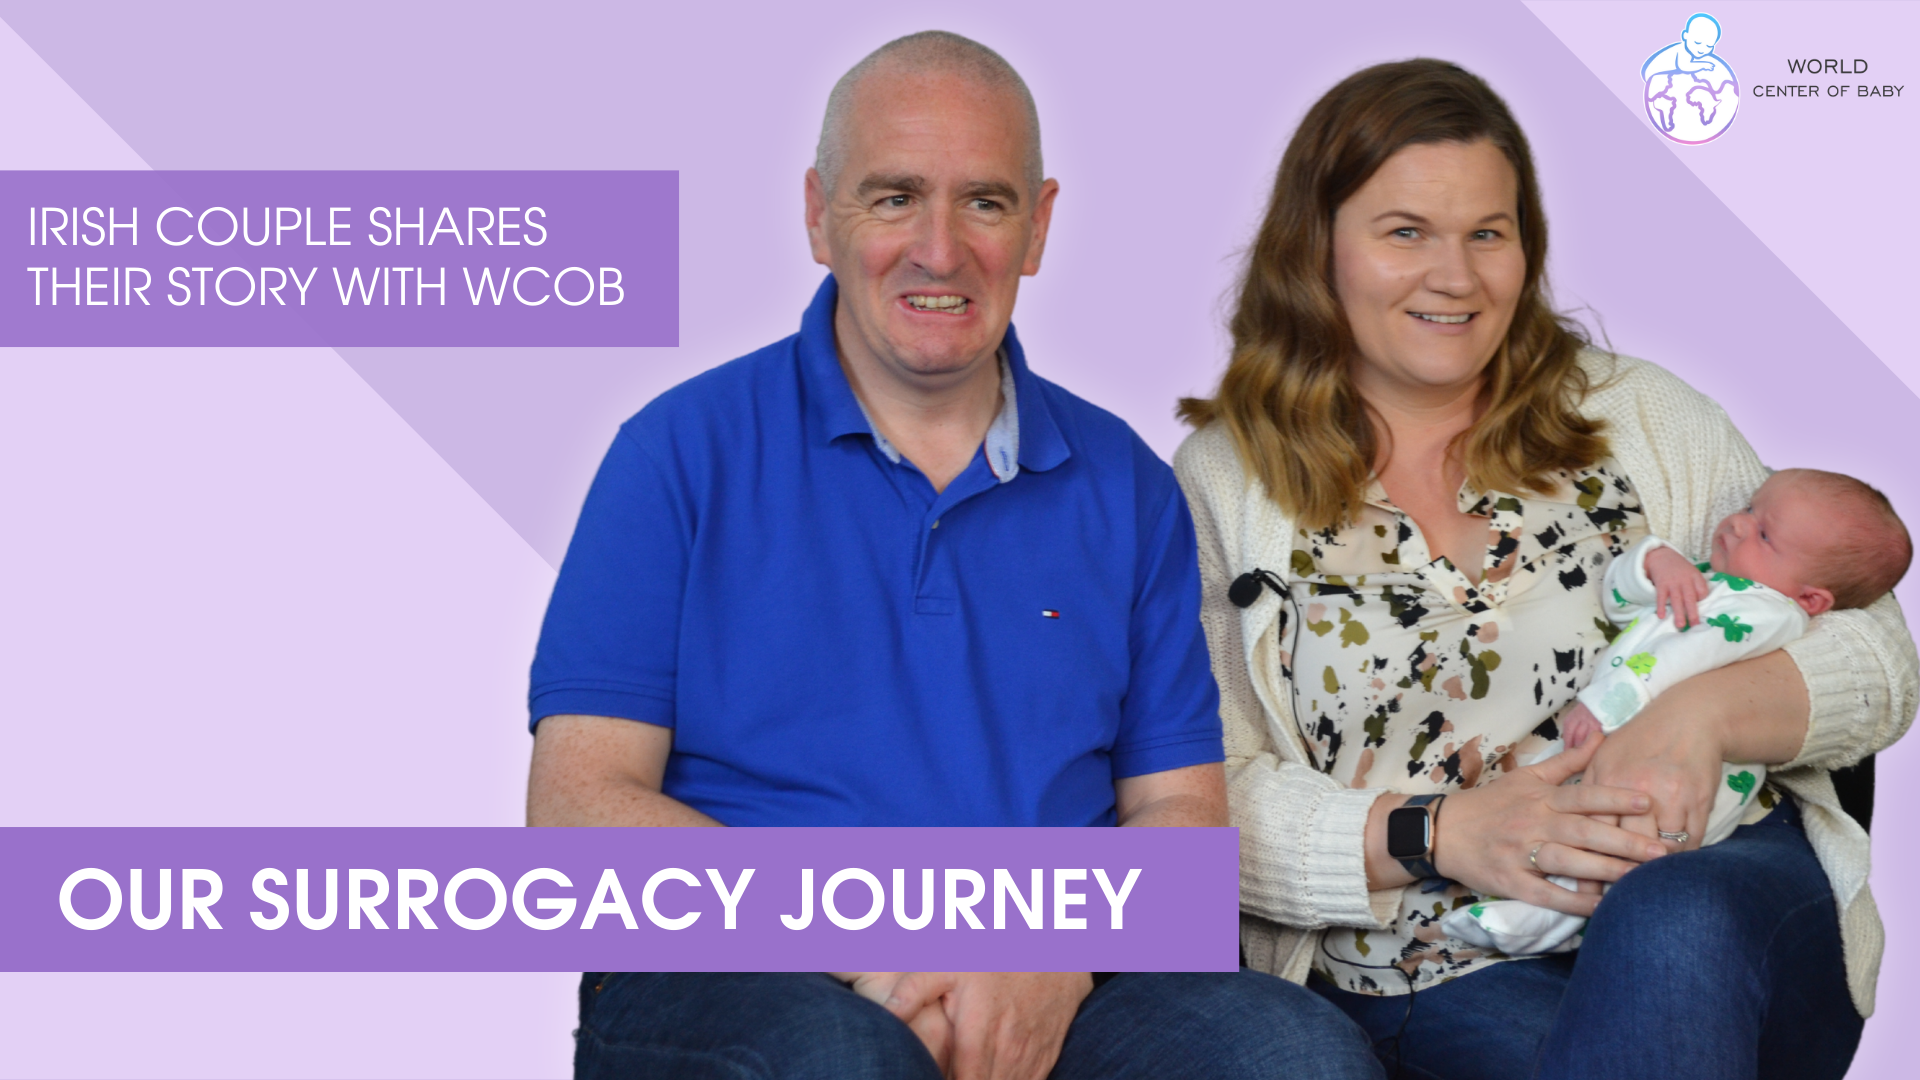 Our Surrogacy Journey — Irish Couple Shares Their Story With World Center of Baby